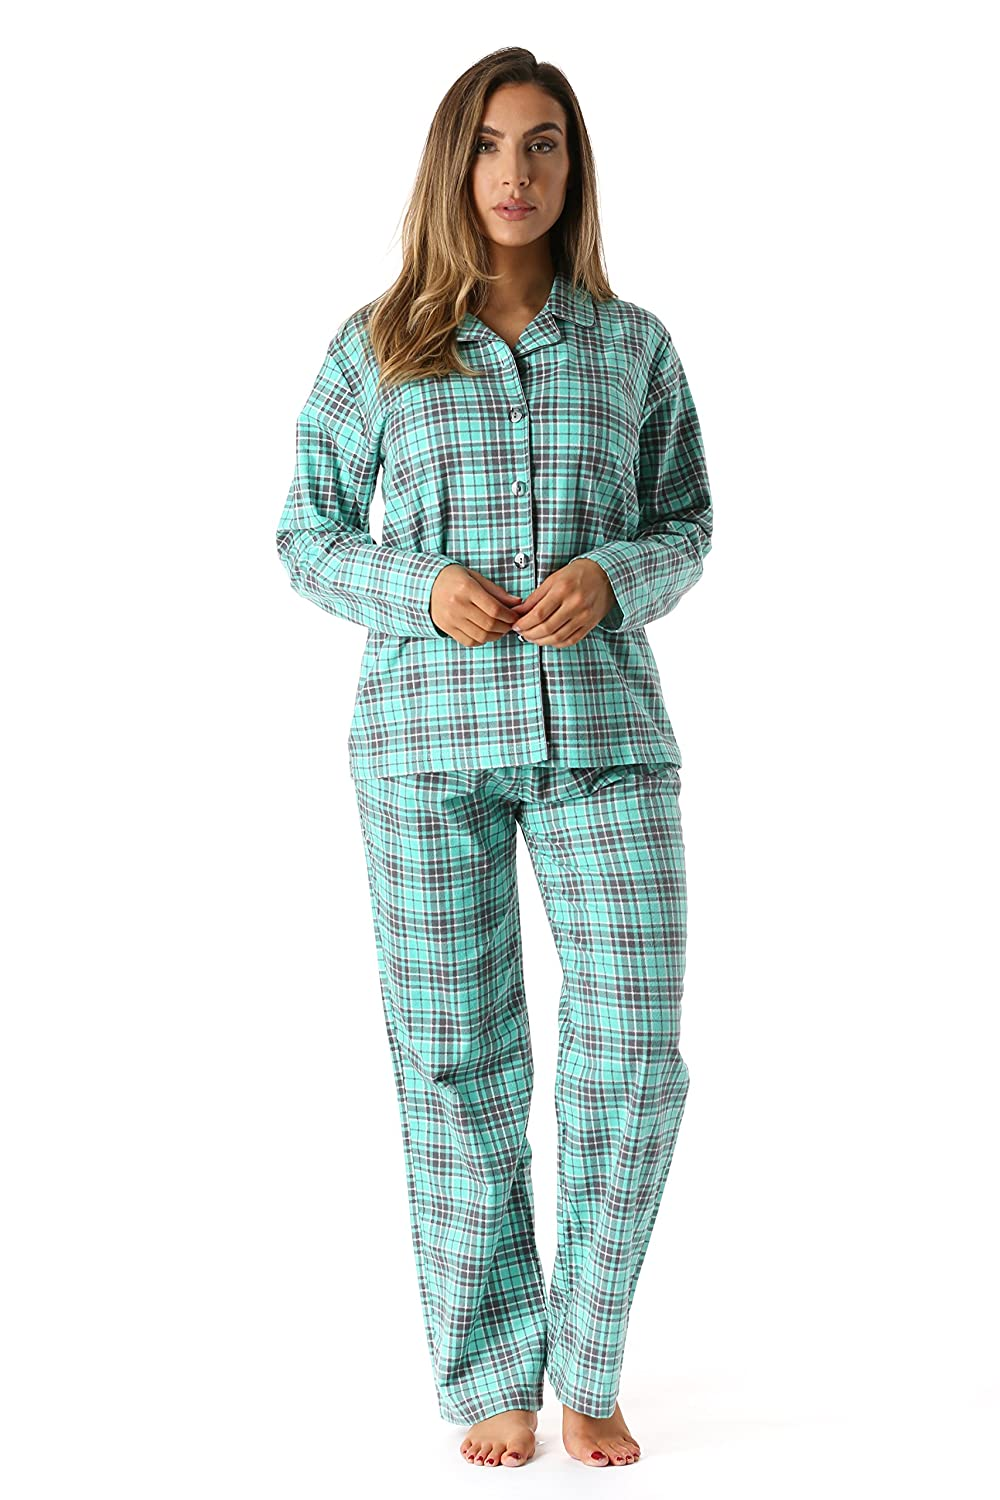 #followme Printed Flannel Button Front PJ Pant Set